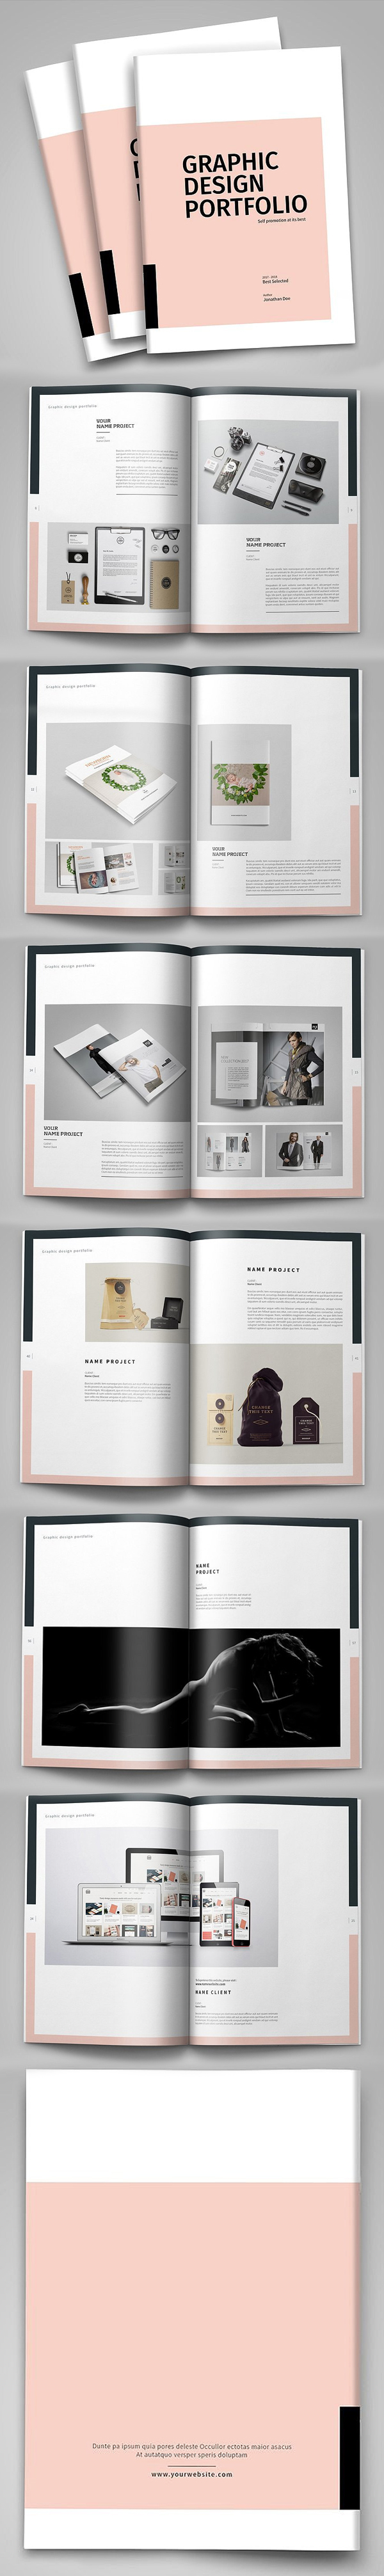 100 Professional Corporate Brochure Templates - 44